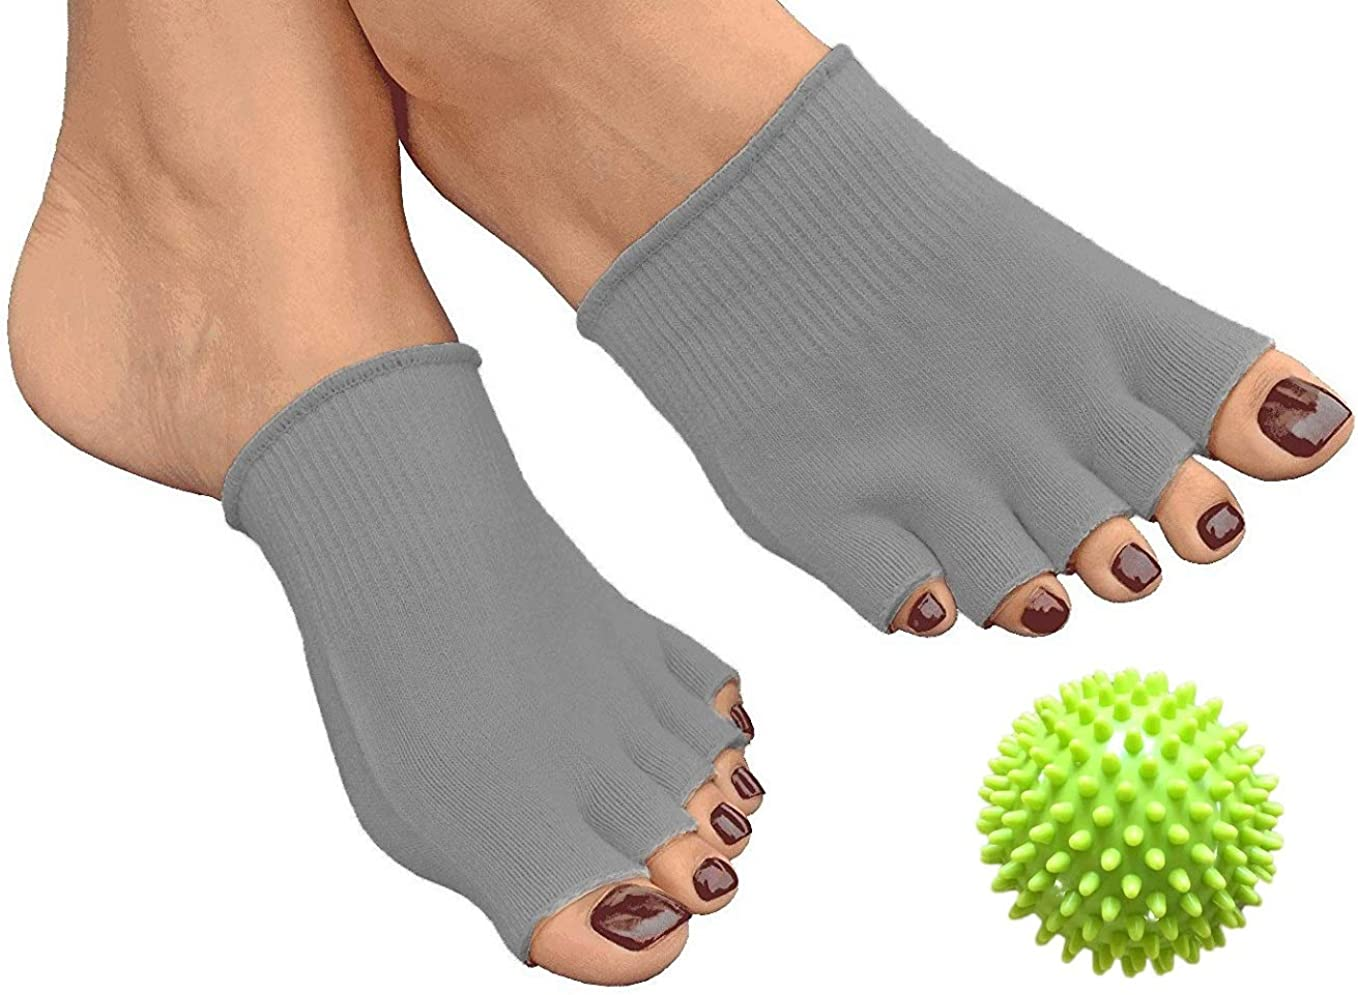 Albuquerque Mall AAATS Toe Gel-Lined Compression Socks Ball Spine Massage half Green